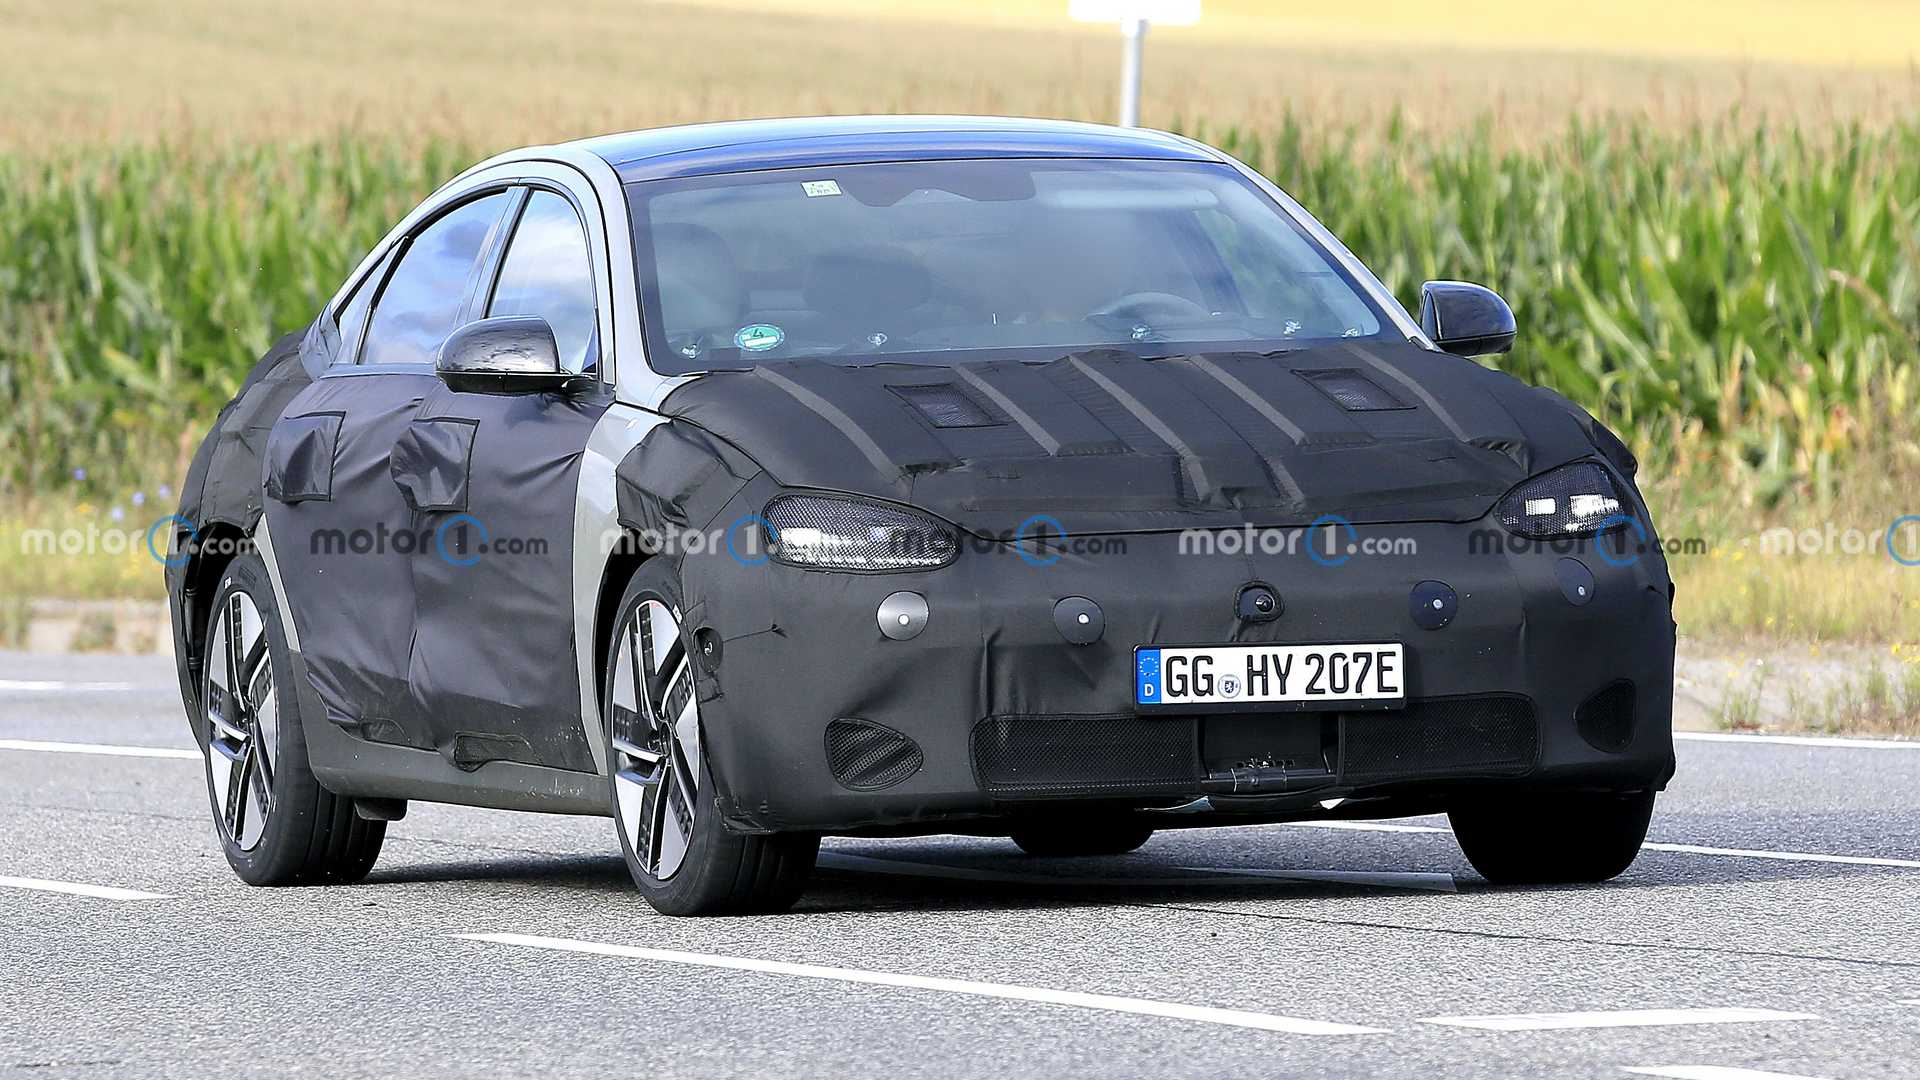 If you hoped that the Hyundai Ioniq 6 would preserve all the bells and whistles the Prophecy Concept (see video) had, we have disappointing news for you. Here are spy photos of a pre-production car that looks considerably trimmed down from the initial design.